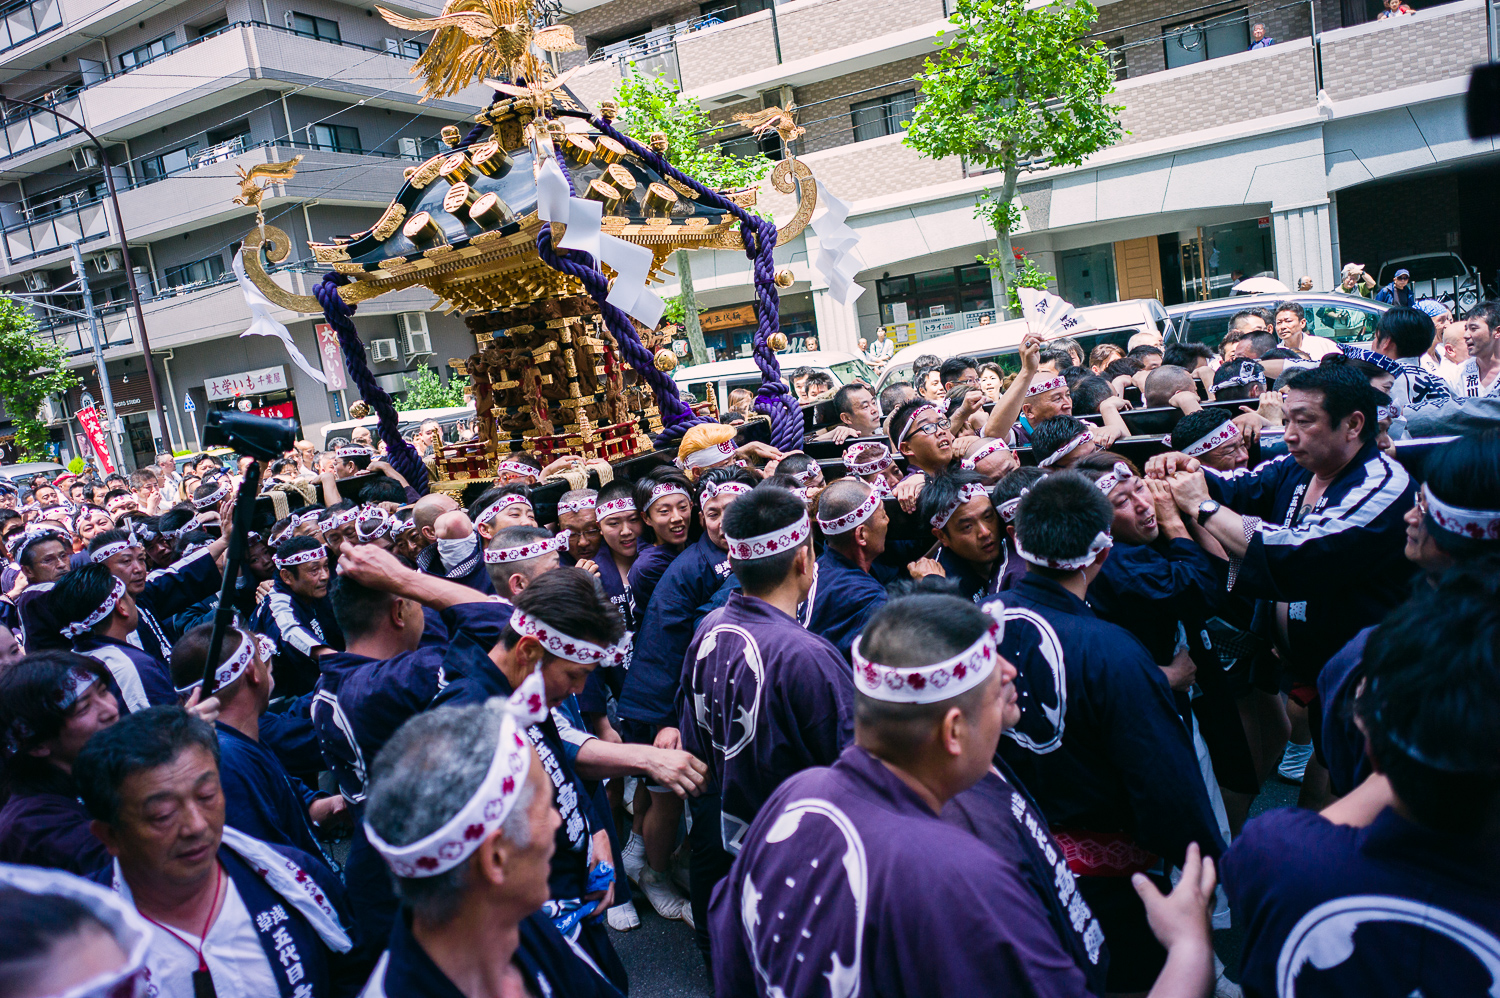 I have to admit this group had a really beautiful mikoshi and it is huge! See no. of people it took to carry.